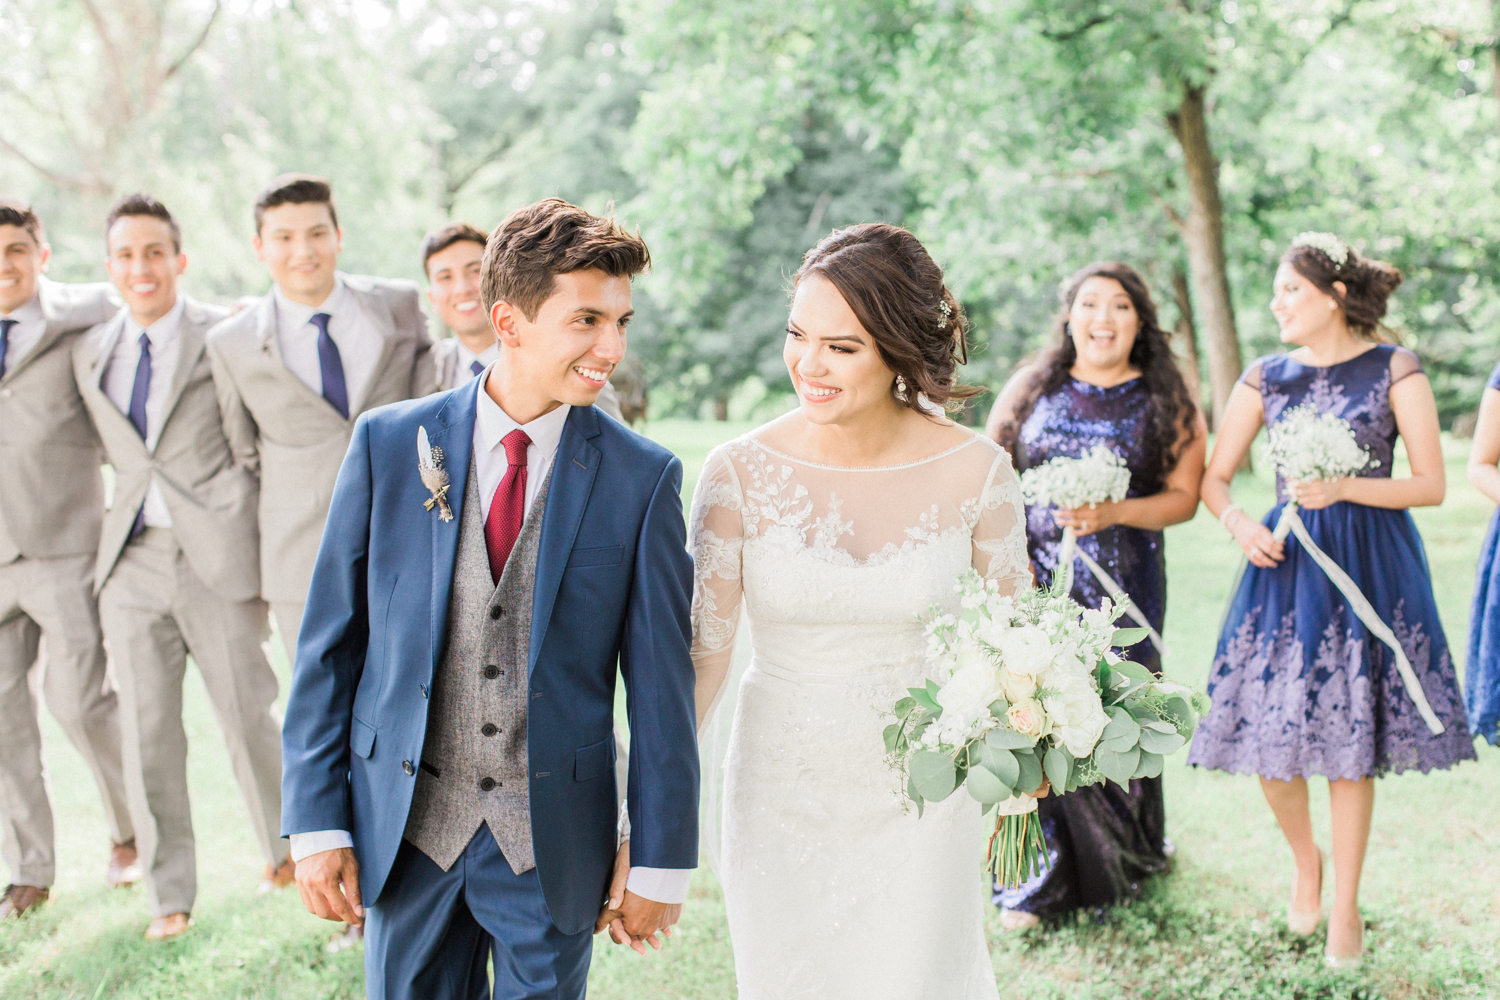 Bride, groom, and bridal party. Summer, outdoor, barn wedding in north Georgia at Hays McDonald Farm in Jefferson, Georgia. Photo by Kesia Marie Photography - Fine Art Wedding Photographer.